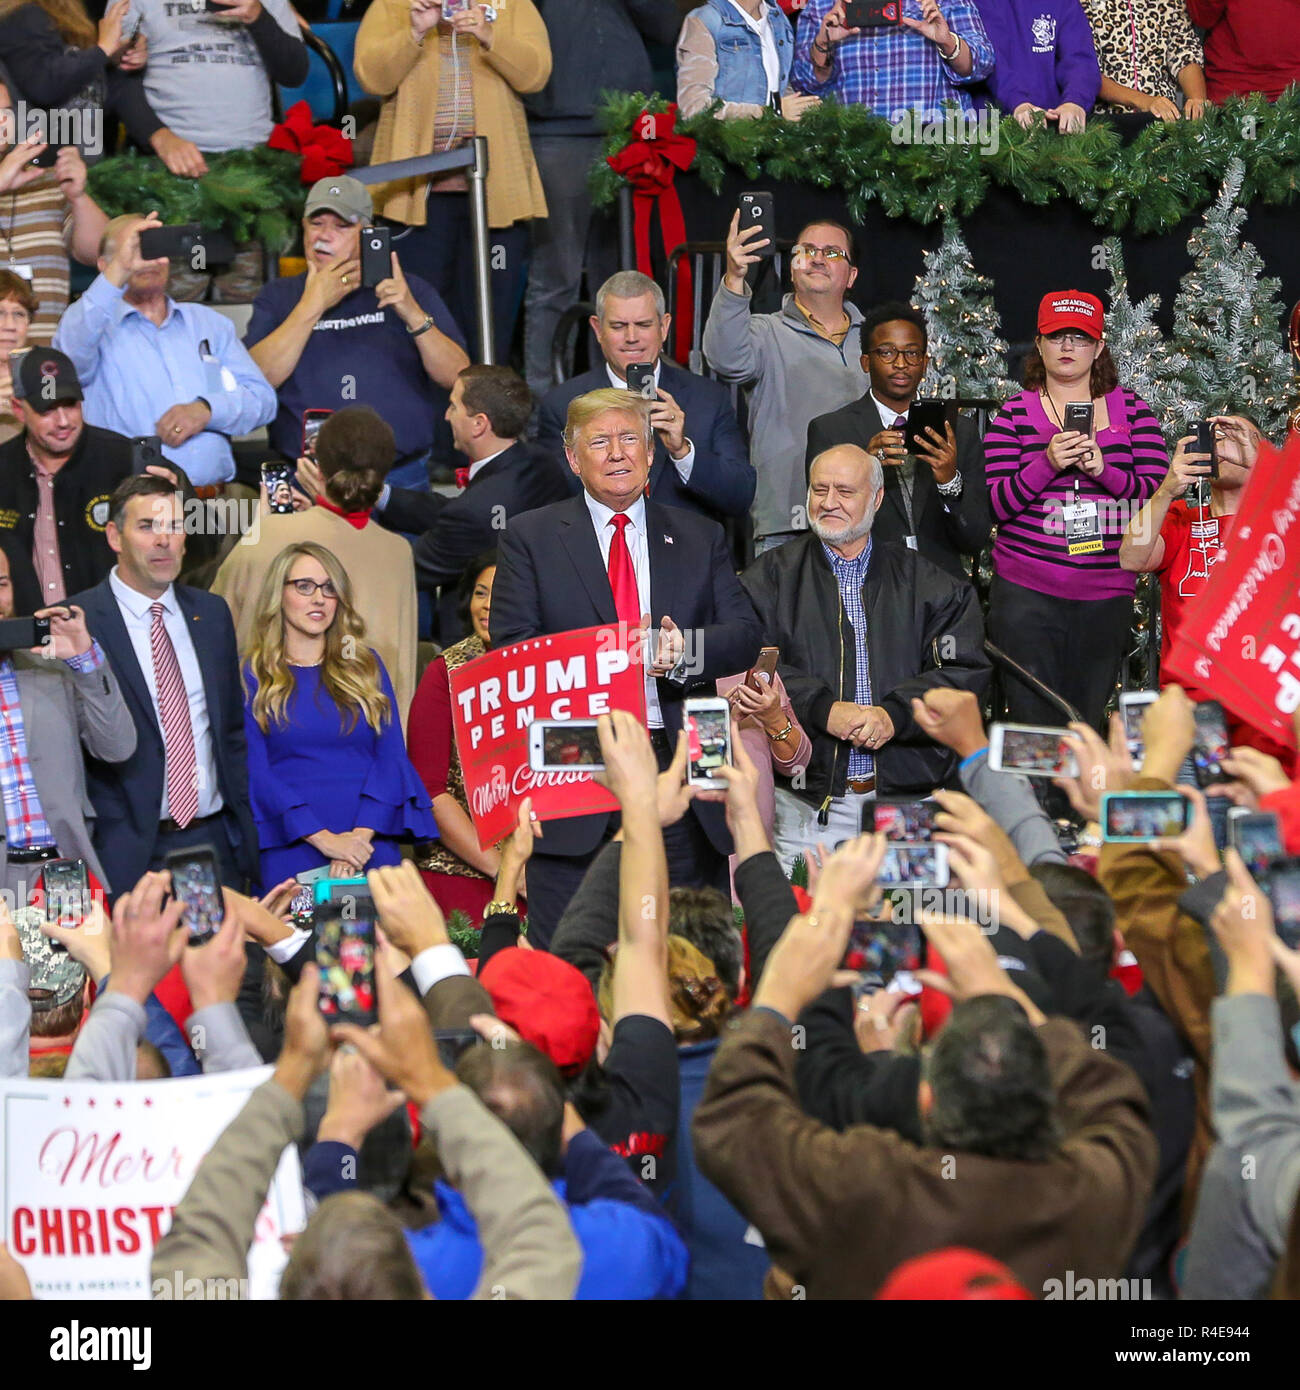 Biloxi, Mississippi, USA. 26th Nov 2018.  President Donald Trump rallying  support for candidate Senator Cindy Hyde-Smith. This was the second of two rallys, first rally earlier in the day was held in Tupelo,. Mississippi. Credit: Tom Pumphret/Alamy Live News - Stock Image